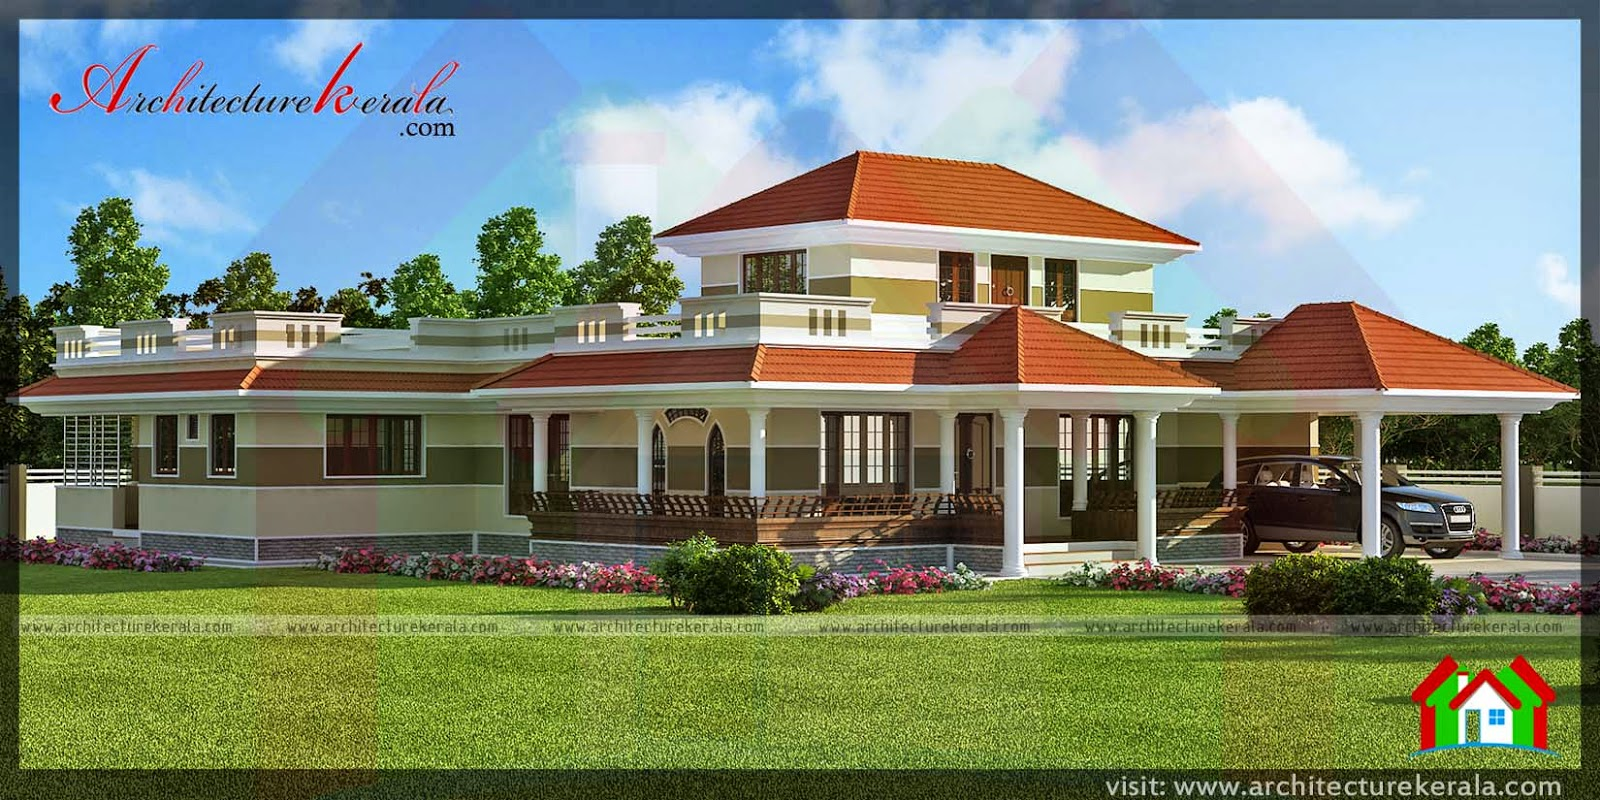 TRADITIONAL STYLE KERALA HOUSE IN 3000 SQFT ARCHITECTURE